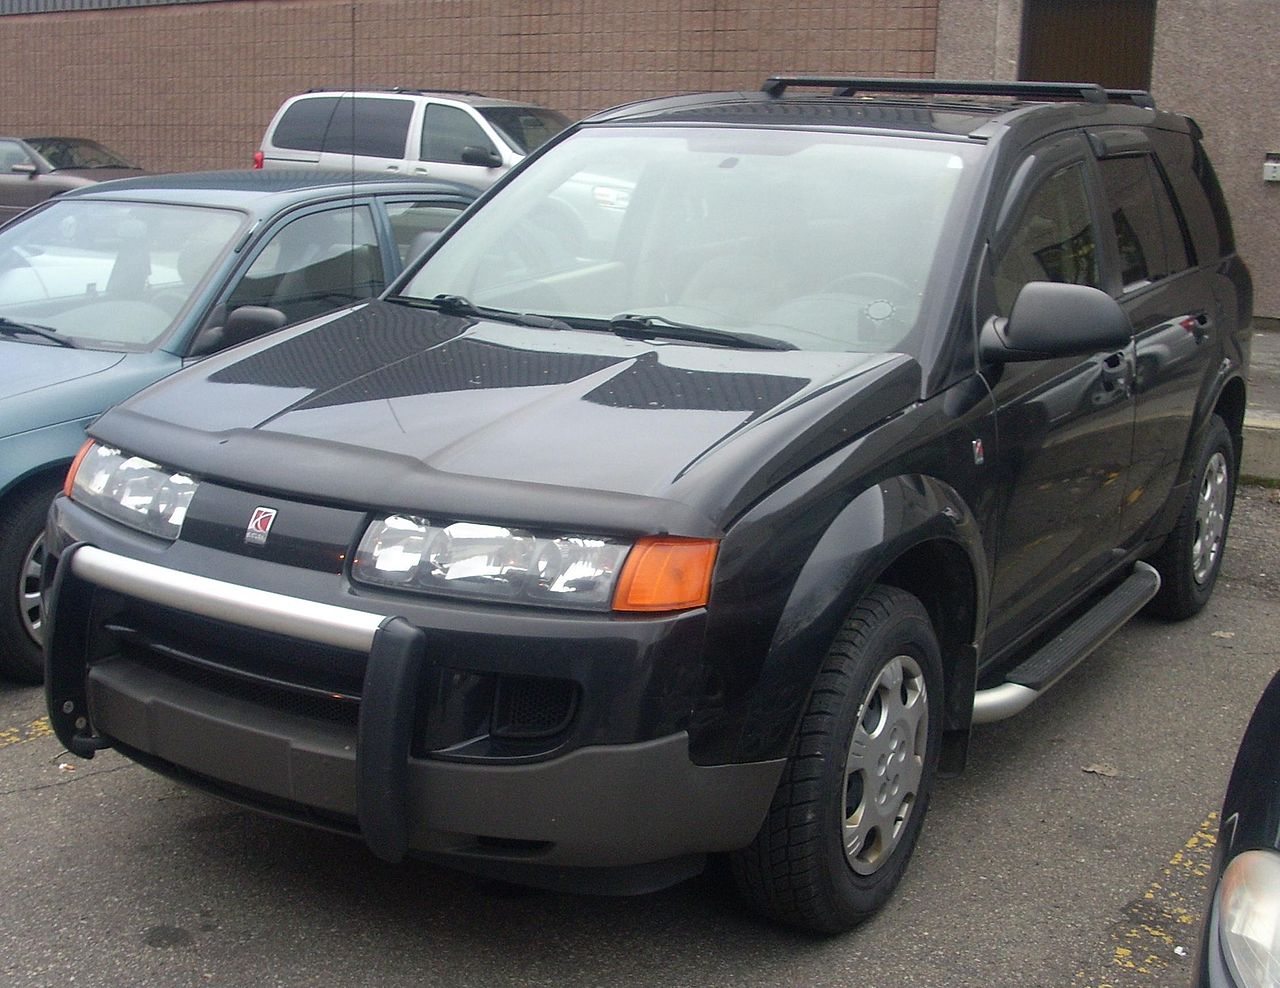 2002 saturn vue information and photos zombiedrive 2002 saturn vue 2 saturn vue 2 vanachro Gallery